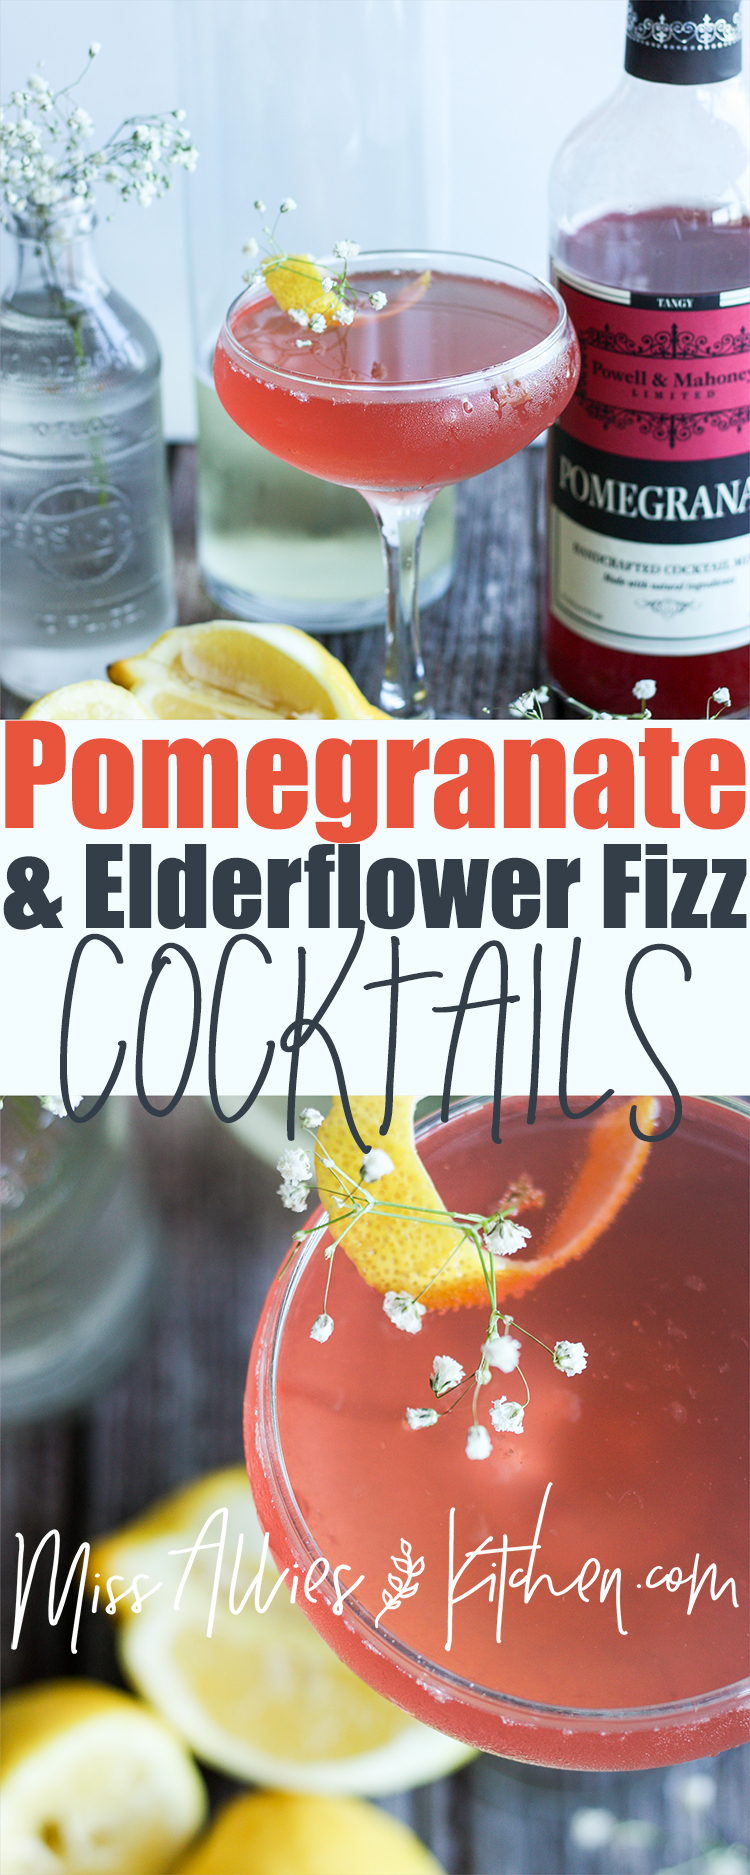 Pomegranate & Elderflower Fizz Cocktail